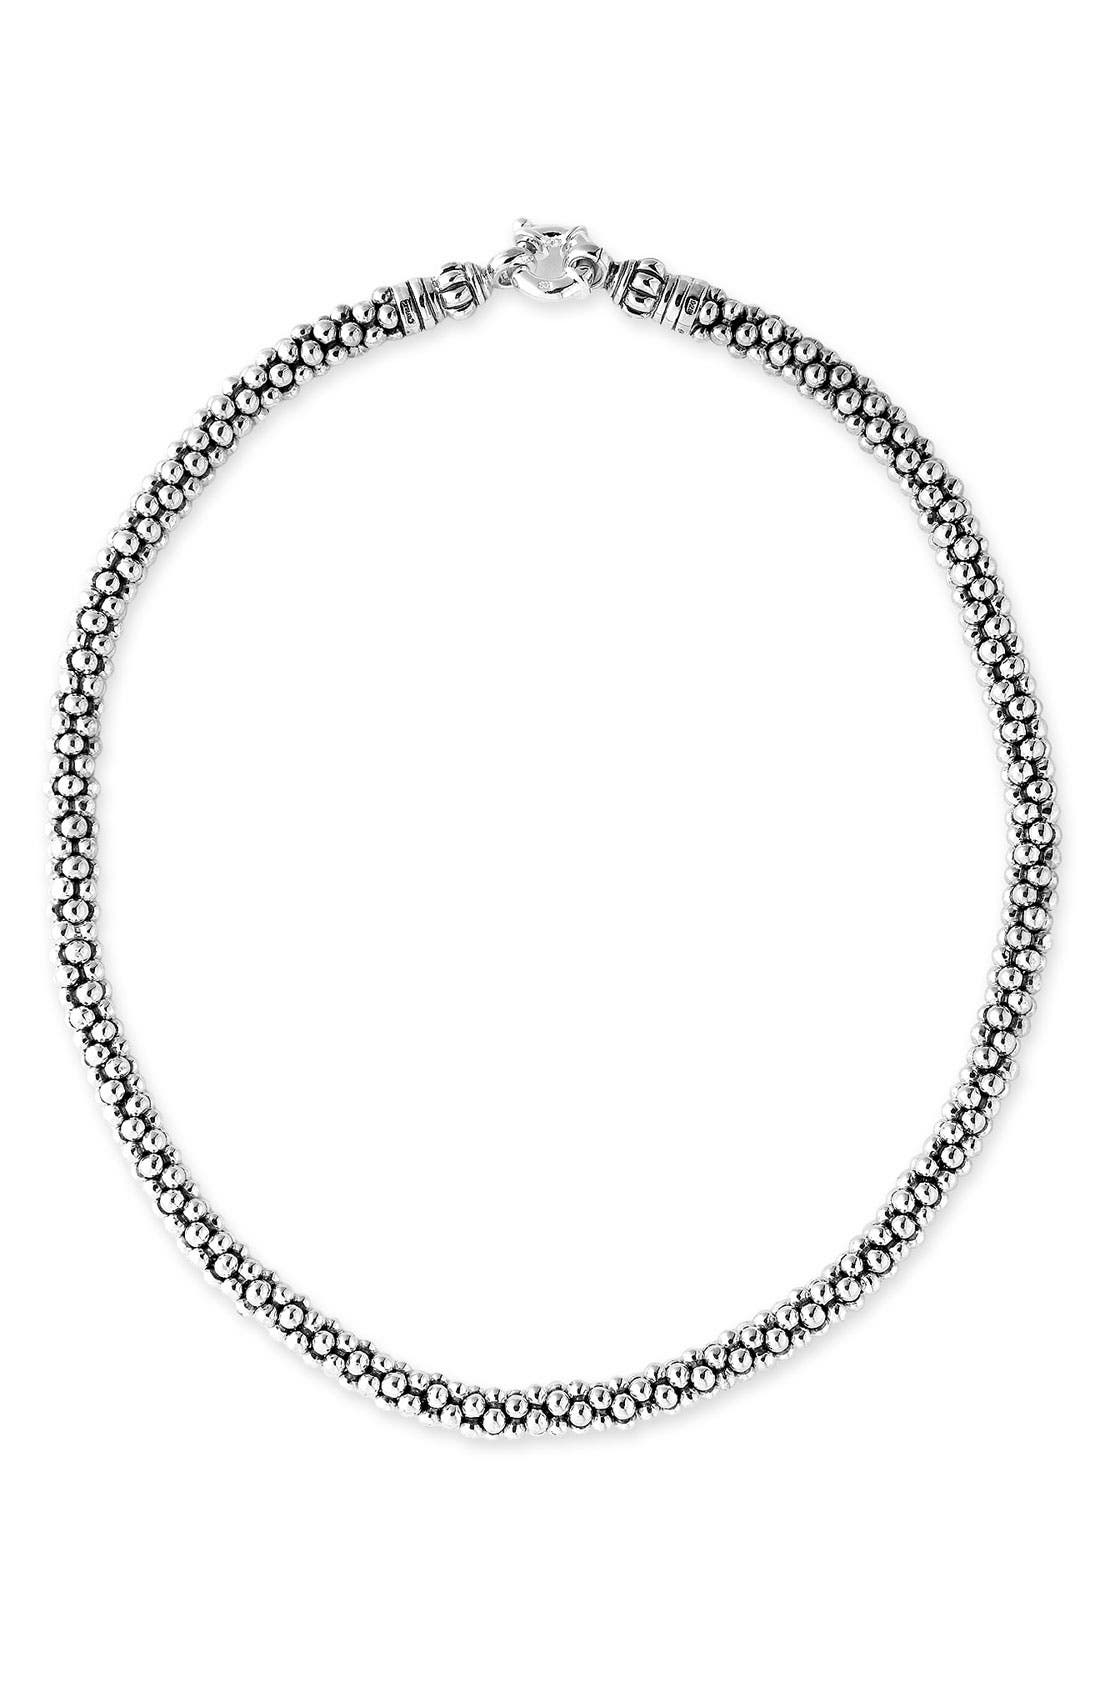 Main Image - LAGOS Sterling Silver Caviar 7mm Rope Necklace